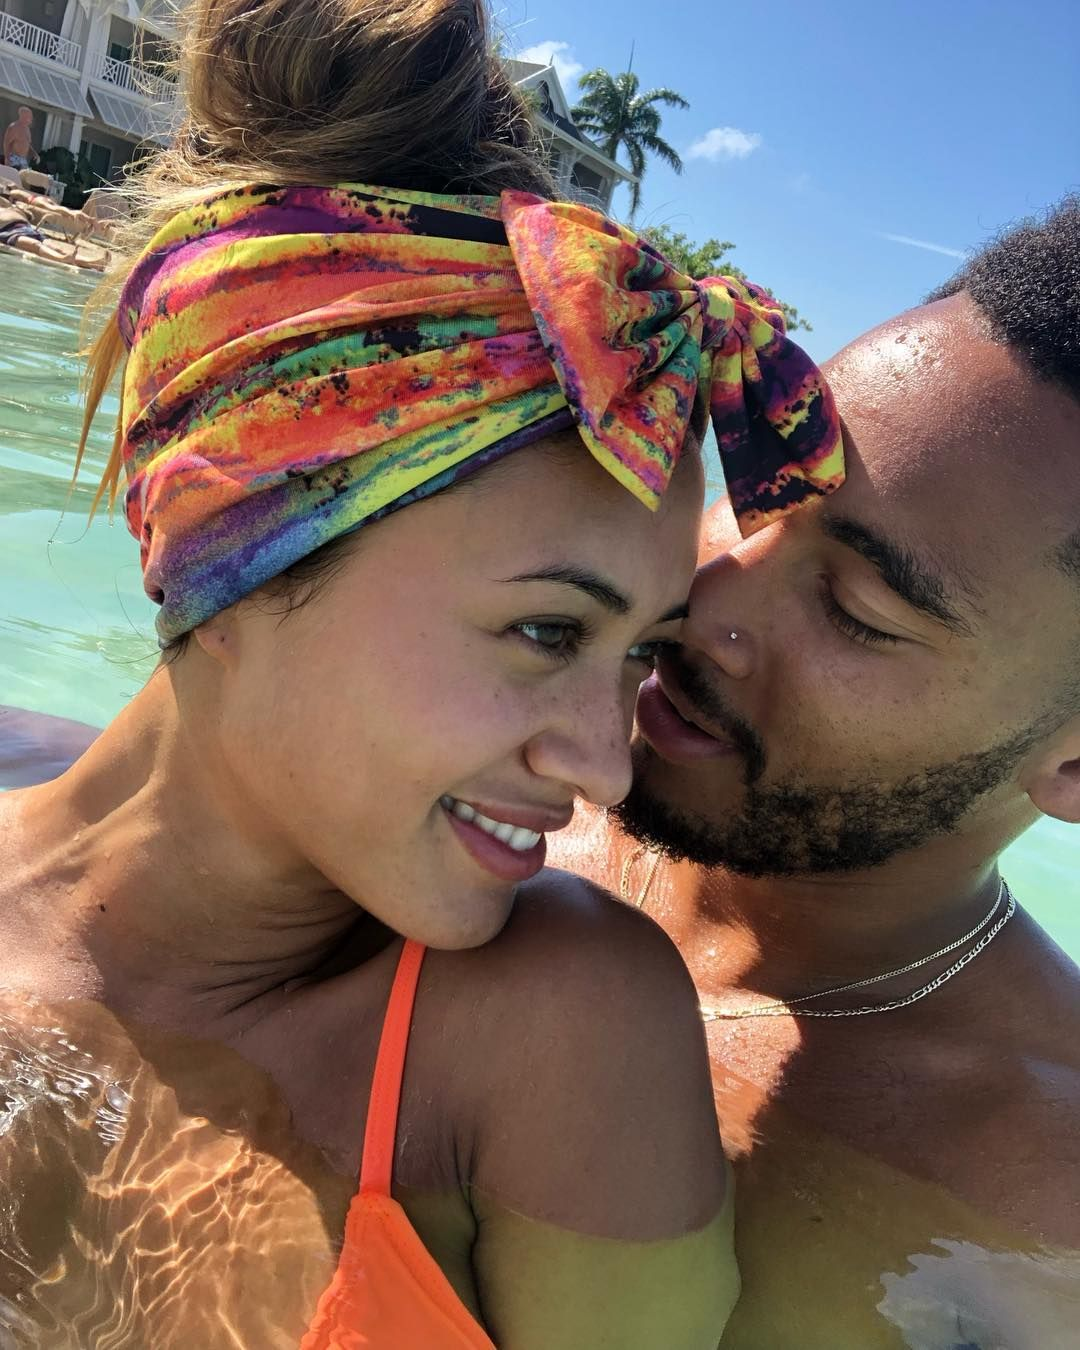 Image may contain: Kaz and Theo, Kazimir Crossley, Kaz Crossley, Theo Campbell, Josh Denzel, Love Island, dating, boyfriend, girlfriend,Bikini, Outdoors, Headband, Water, Female, Swimwear, Hat, Person, Human, Face, Clothing, Apparel